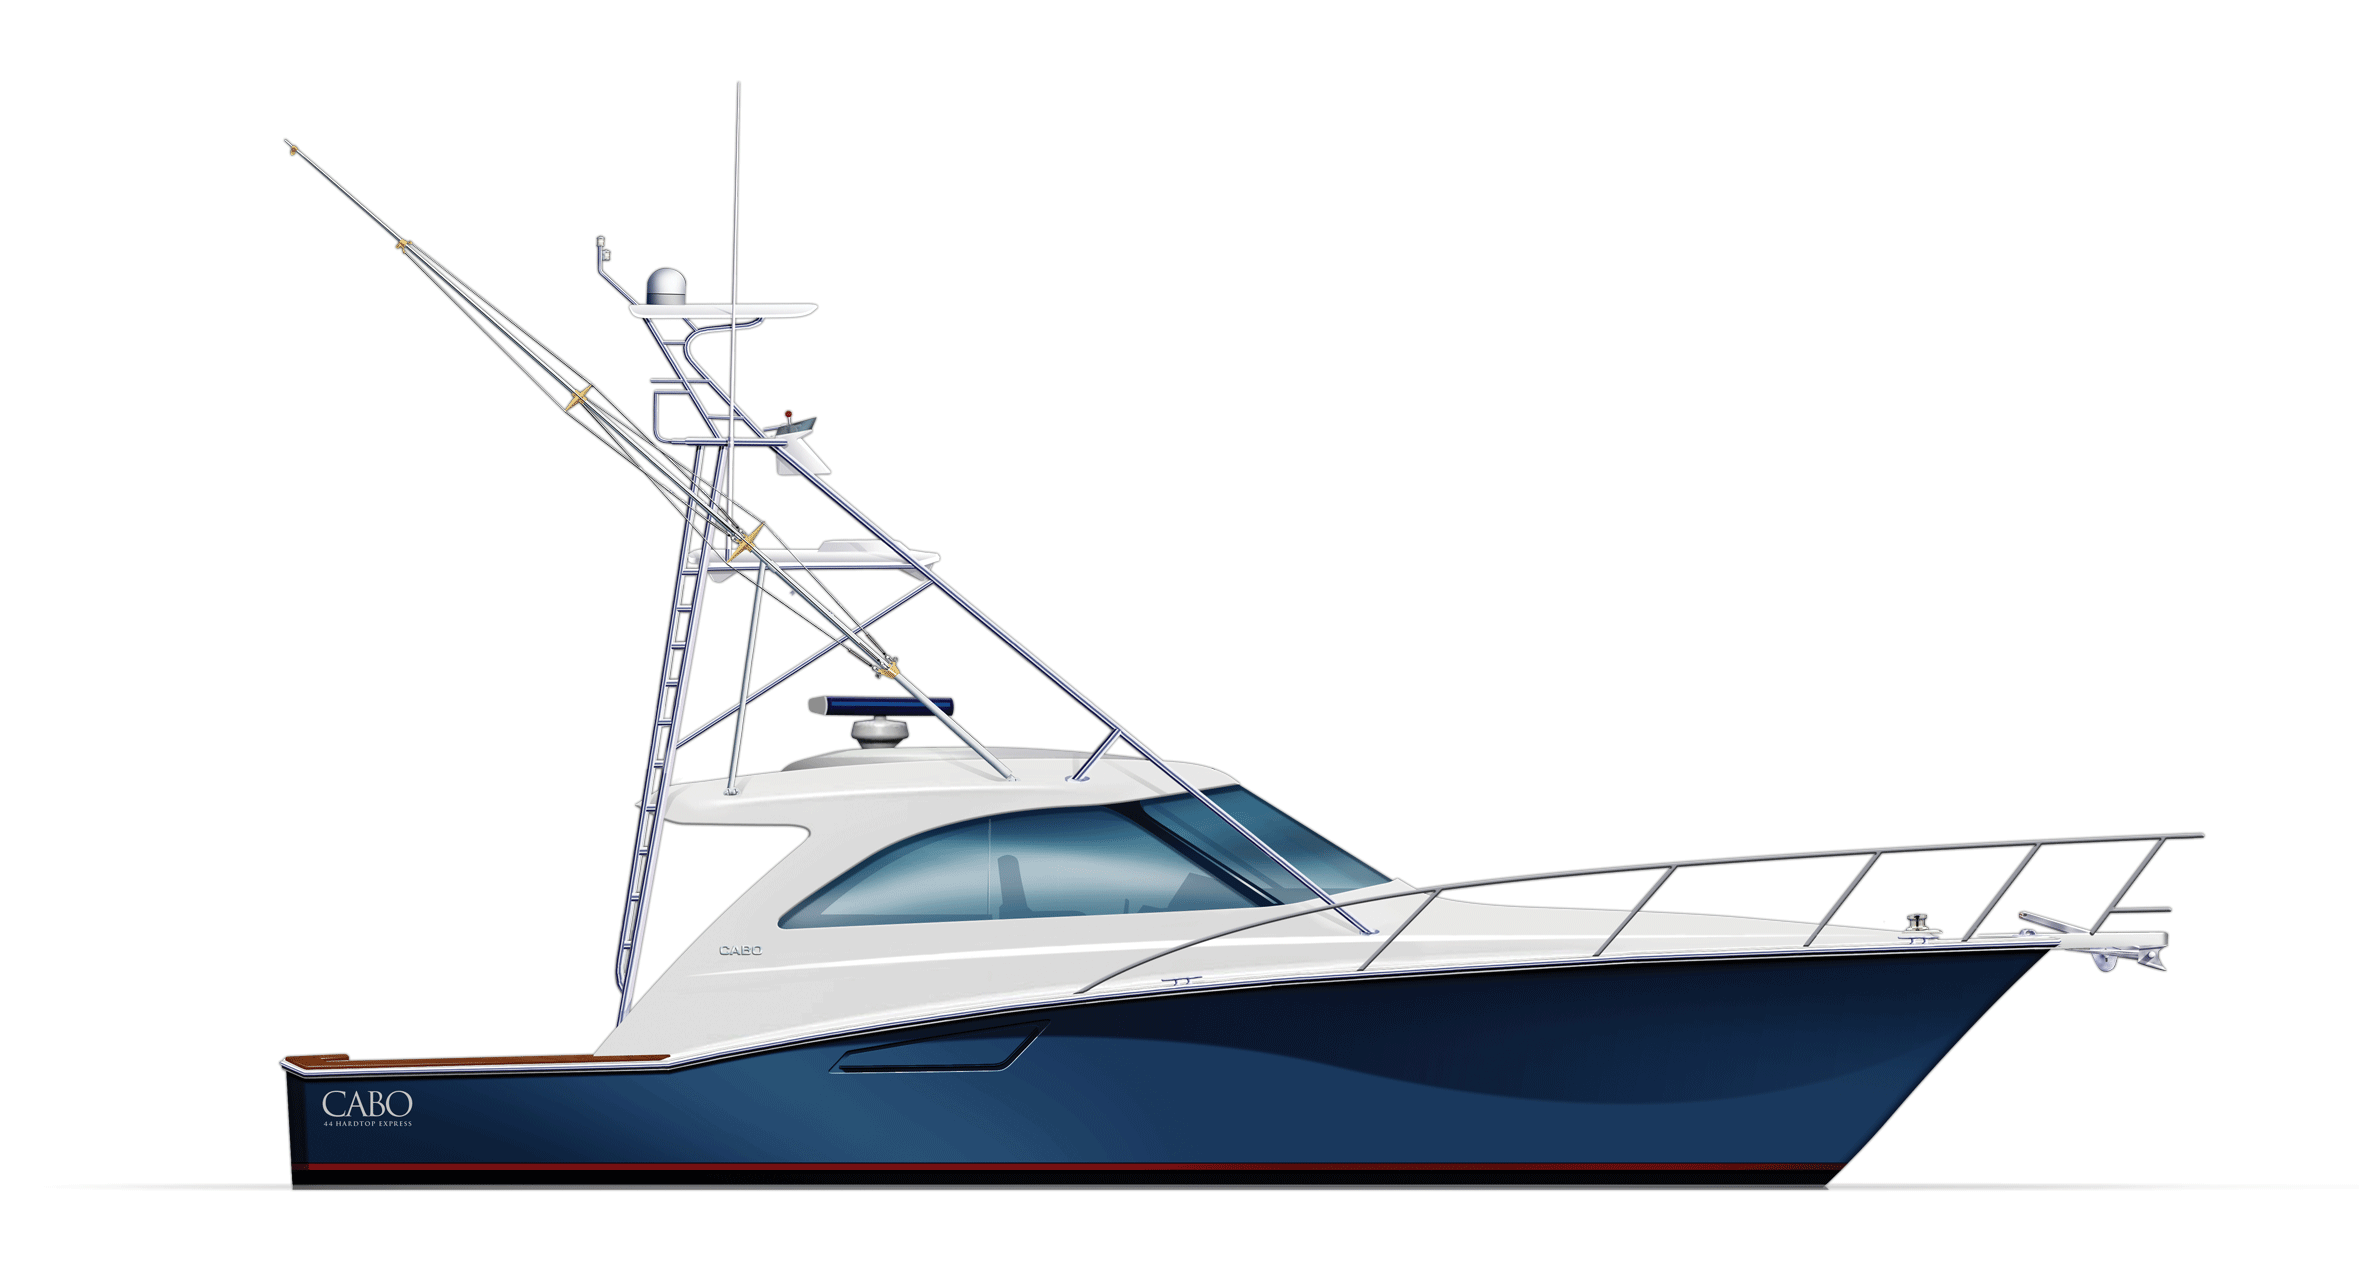 image transparent Yacht clipart transparent background. Cabo yachts boat png.